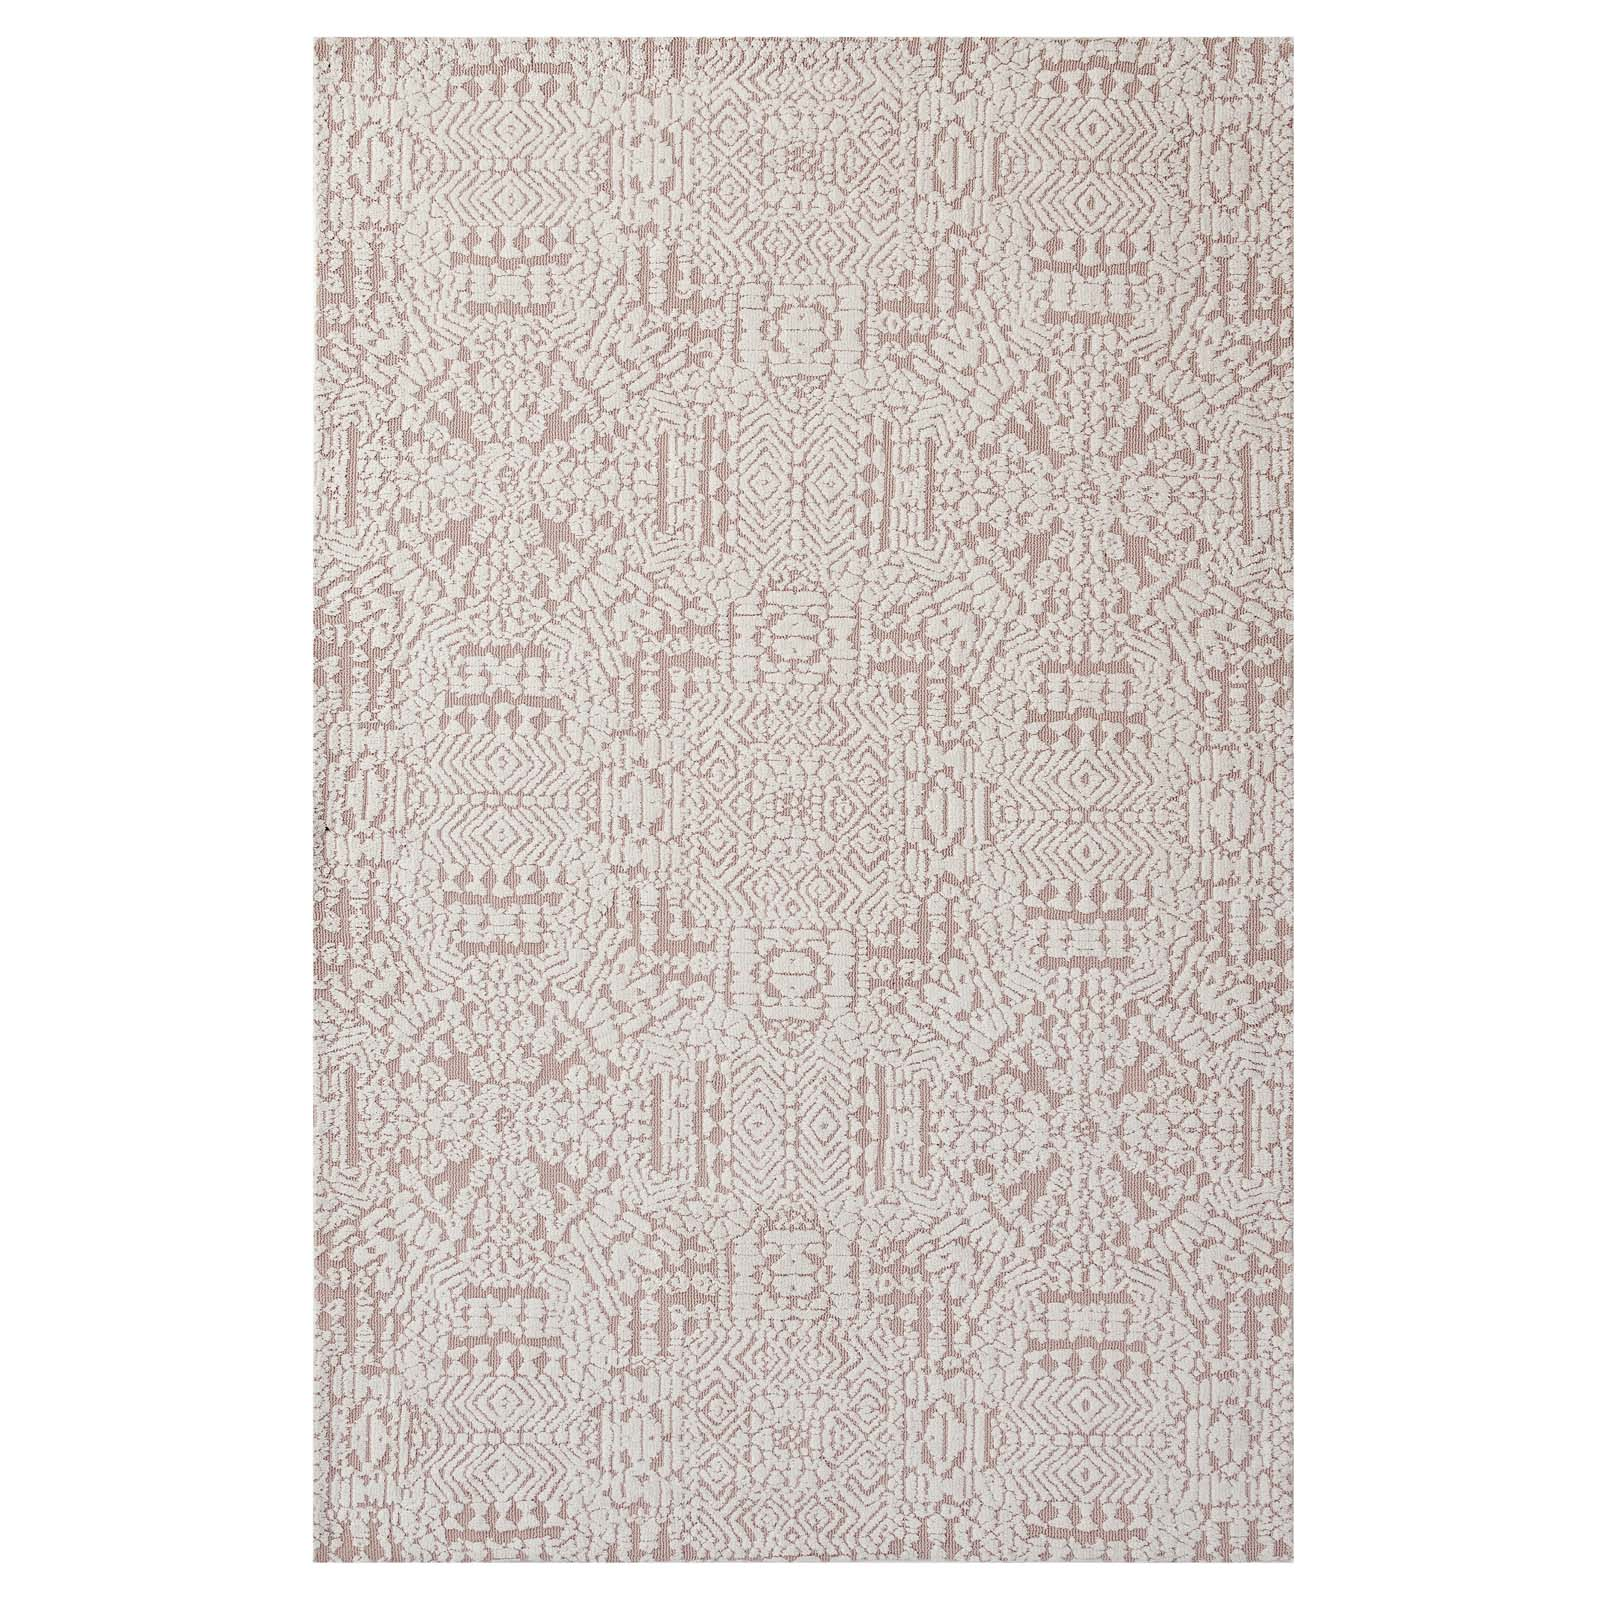 Javiera Contemporary Moroccan 8x10 Area Rug Ivory and Cameo Rose R-1018B-810